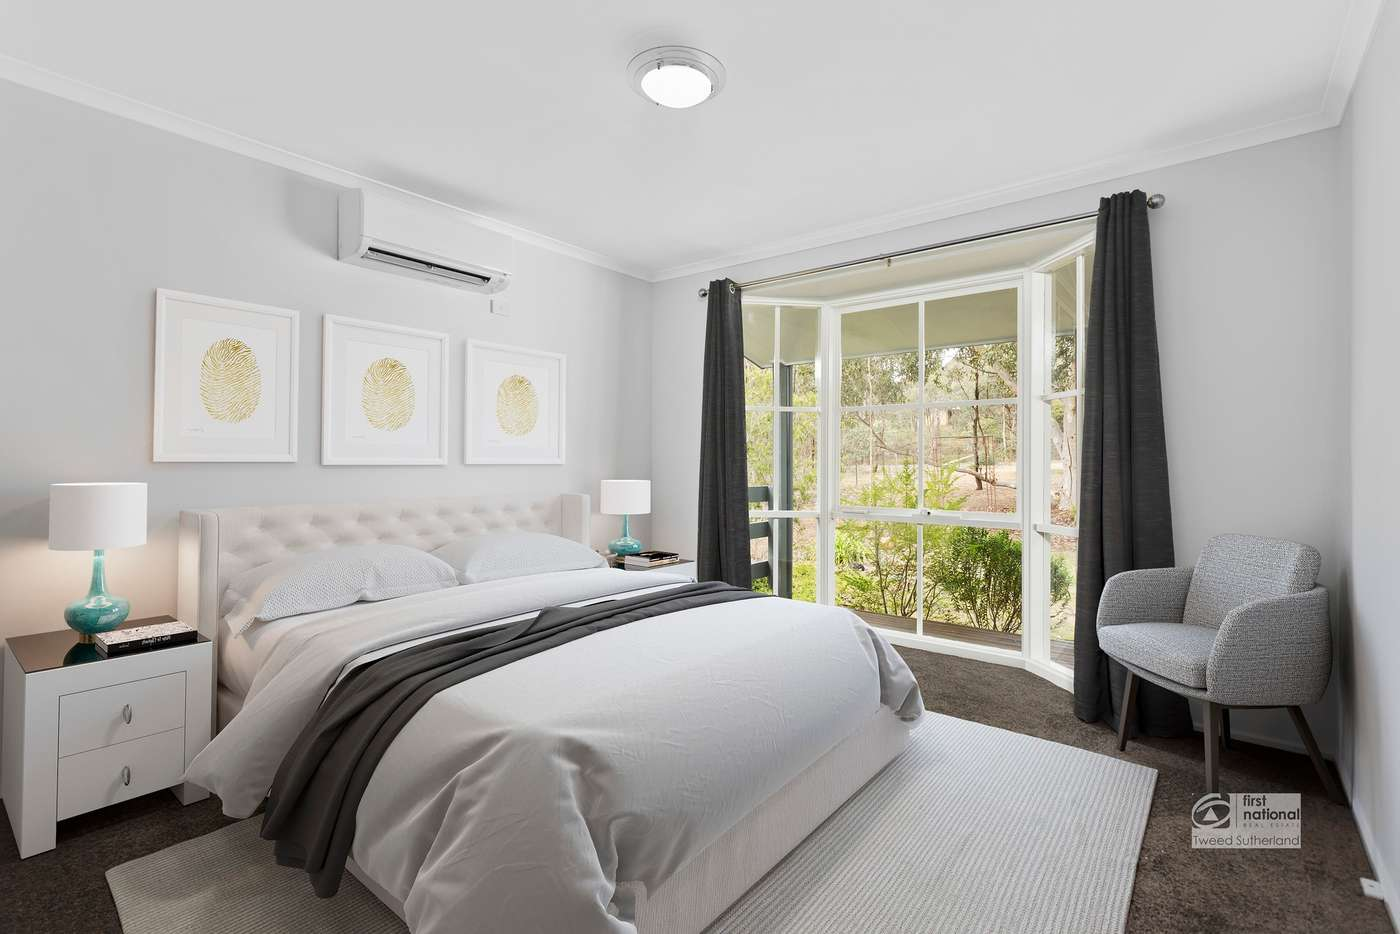 Sixth view of Homely house listing, 92 Nankervis Road, Mandurang VIC 3551